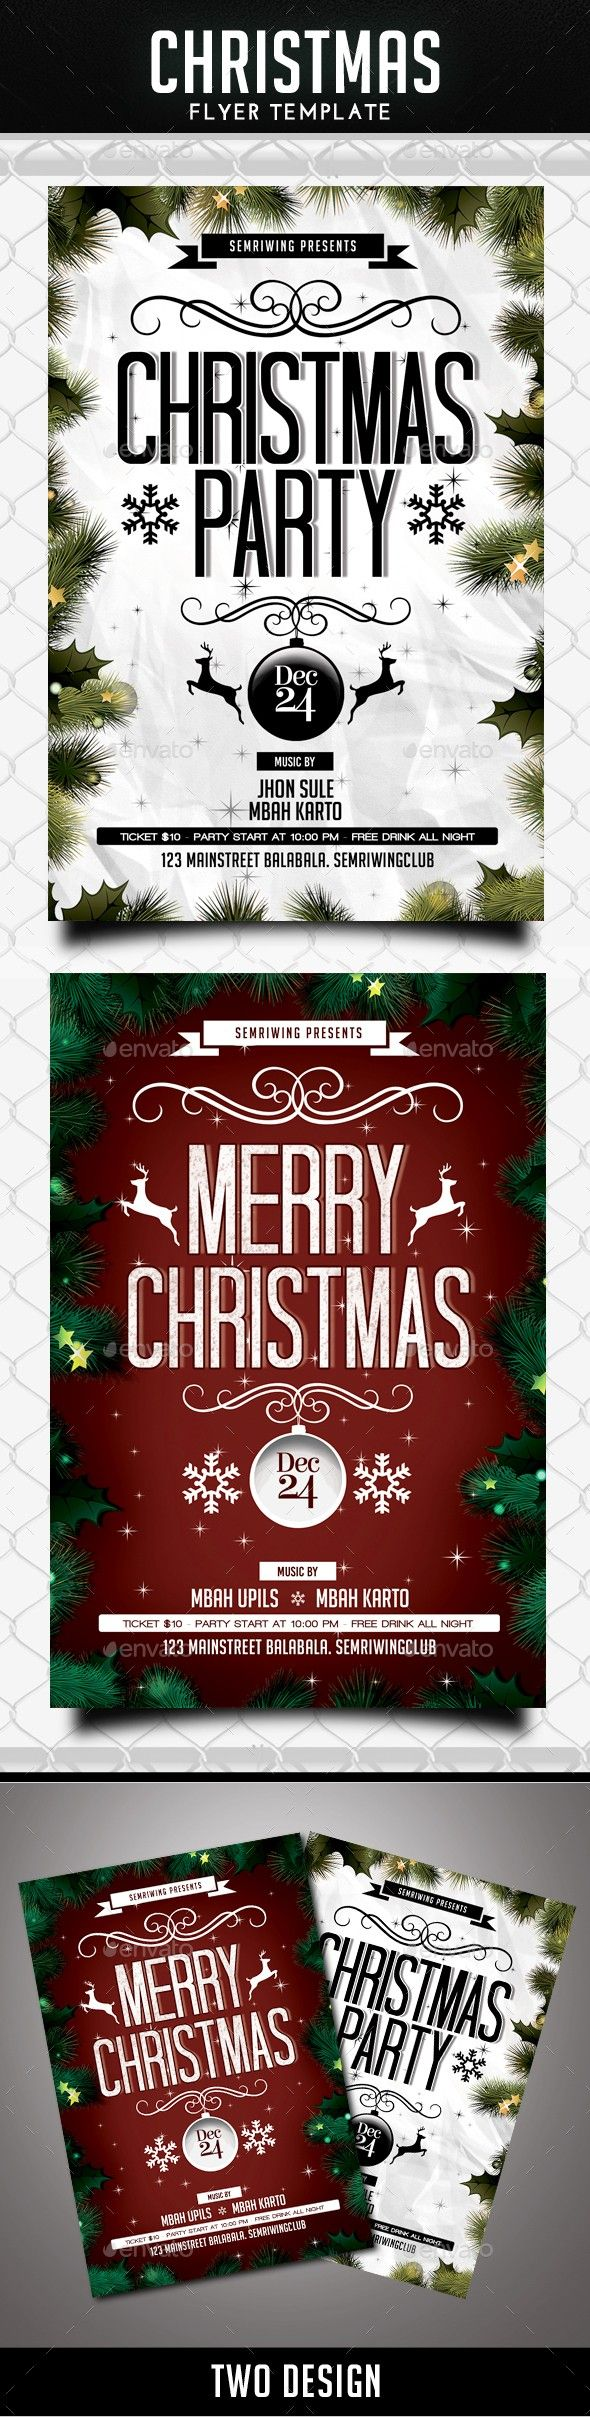 border celebrate celebration christmas christmas flyer christmas party clean december december event deep event flyer holiday new year